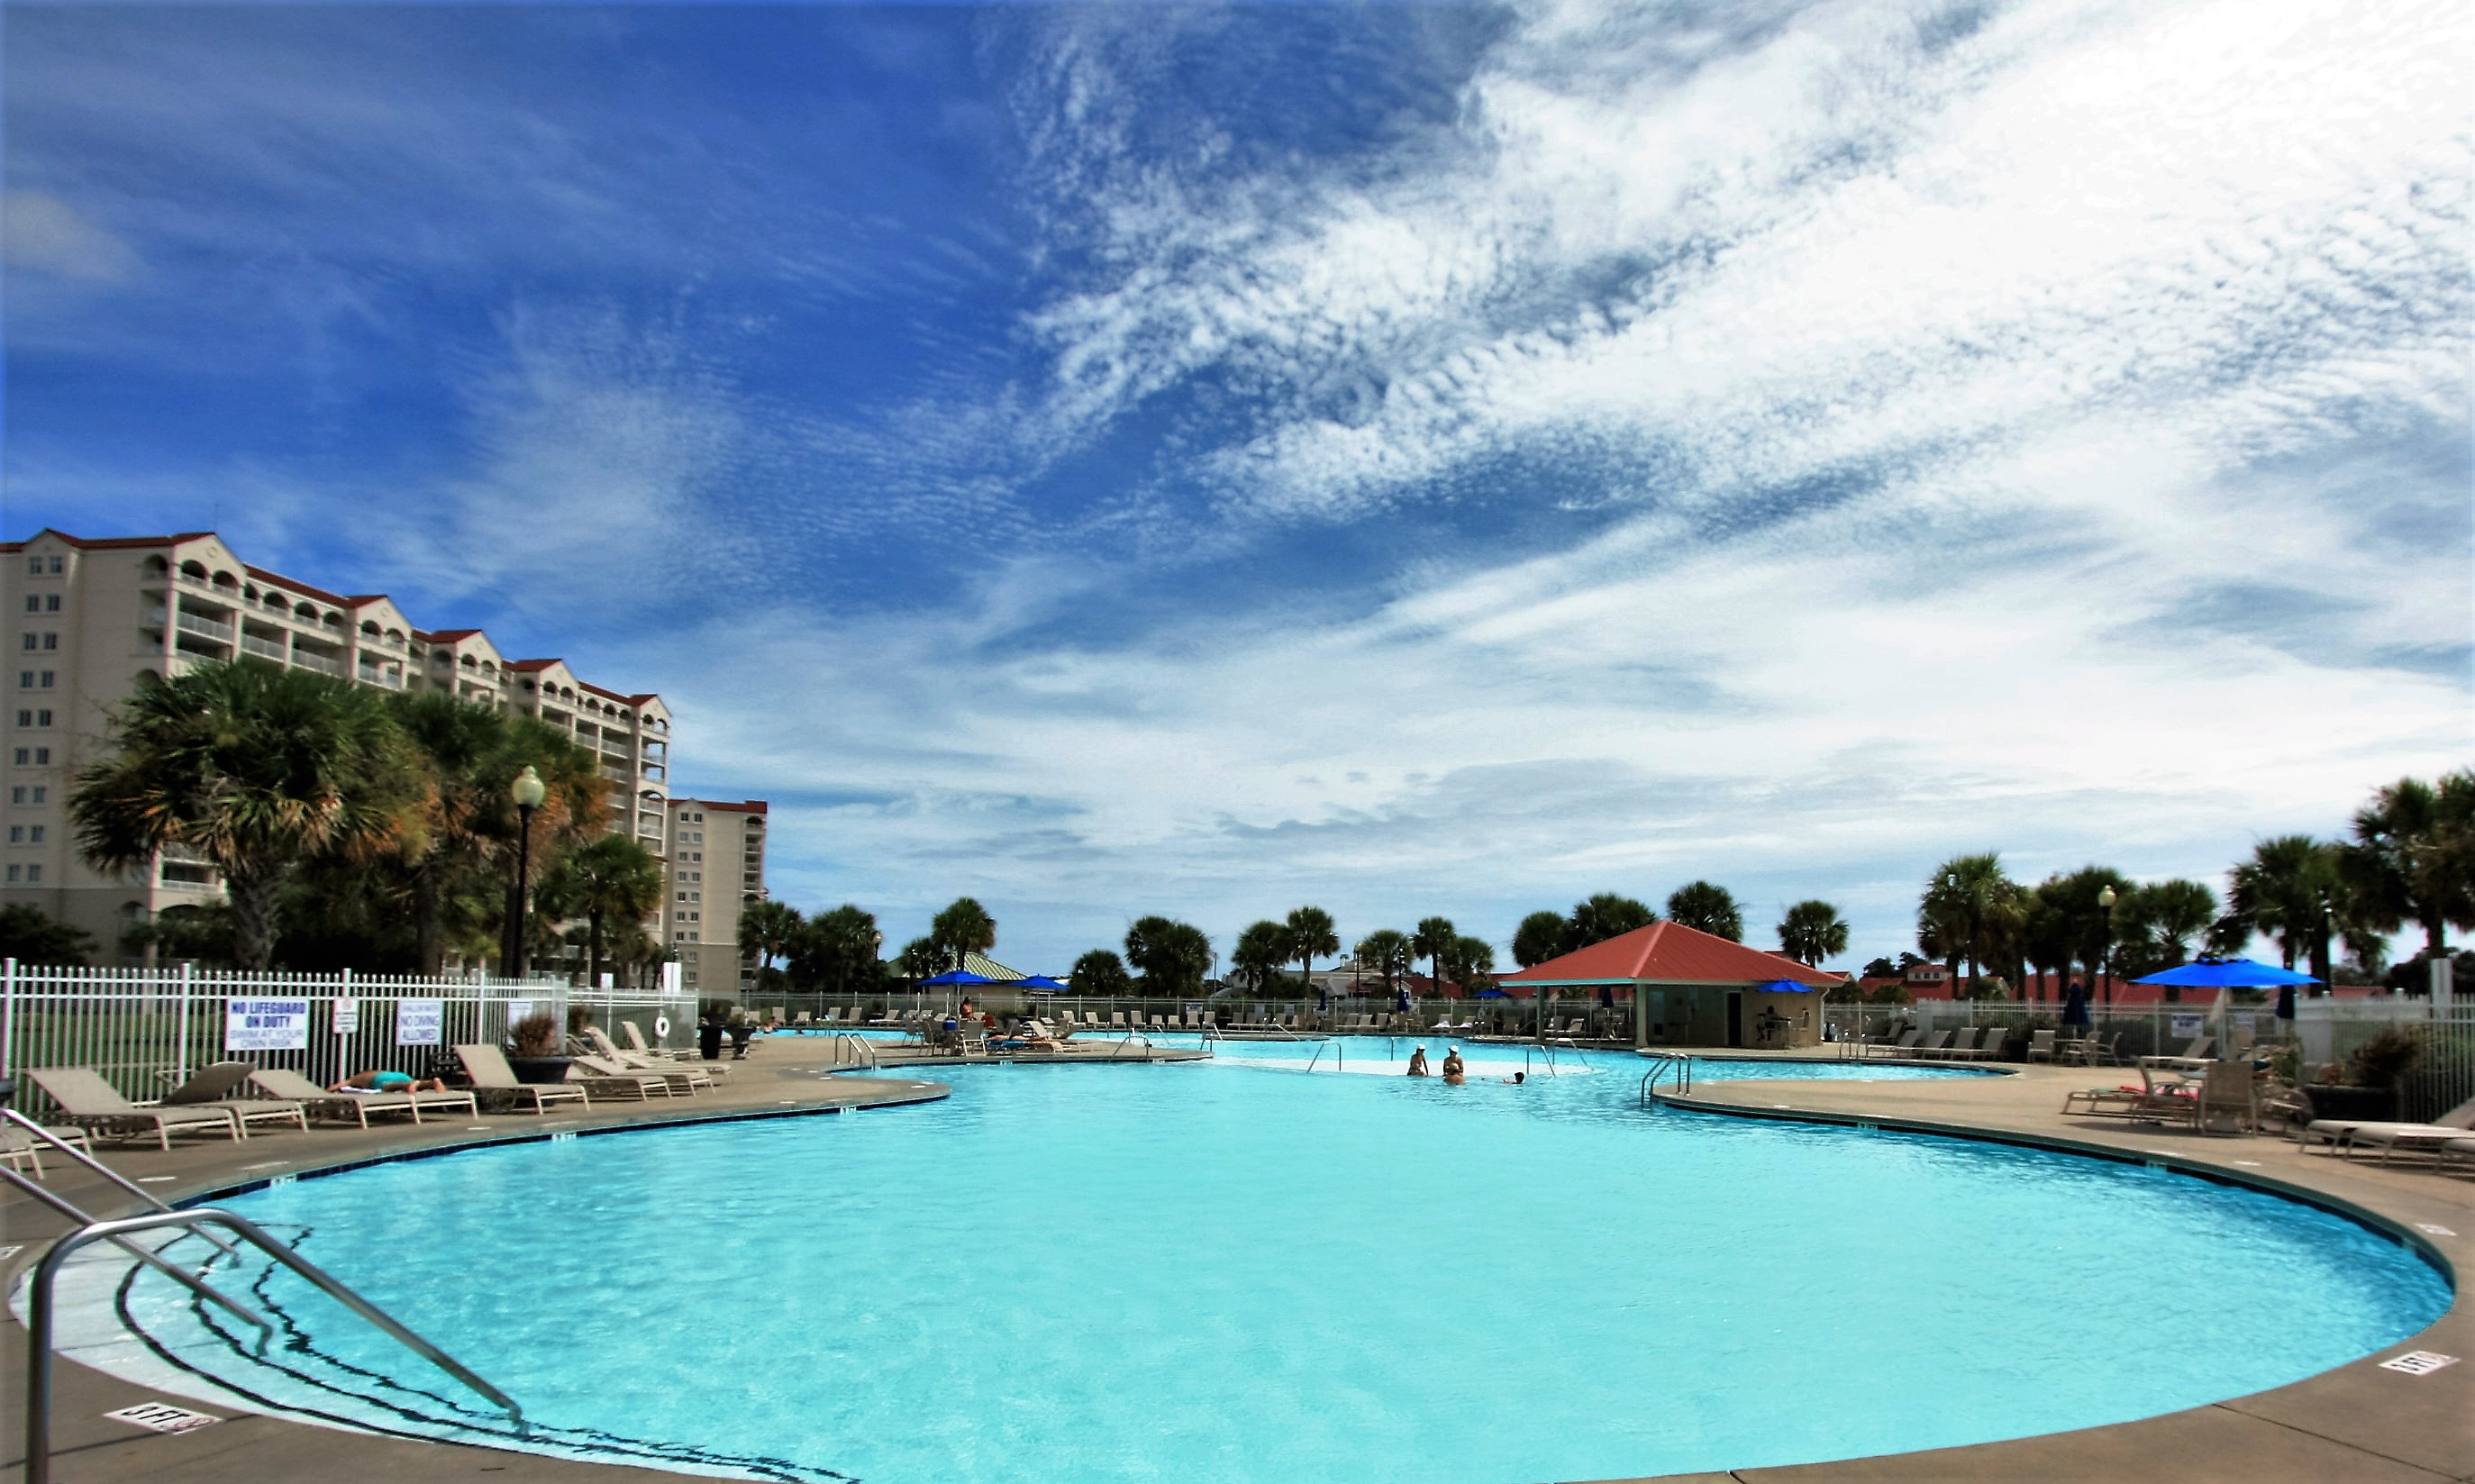 Barefoot Resort Saltwater Pool Area